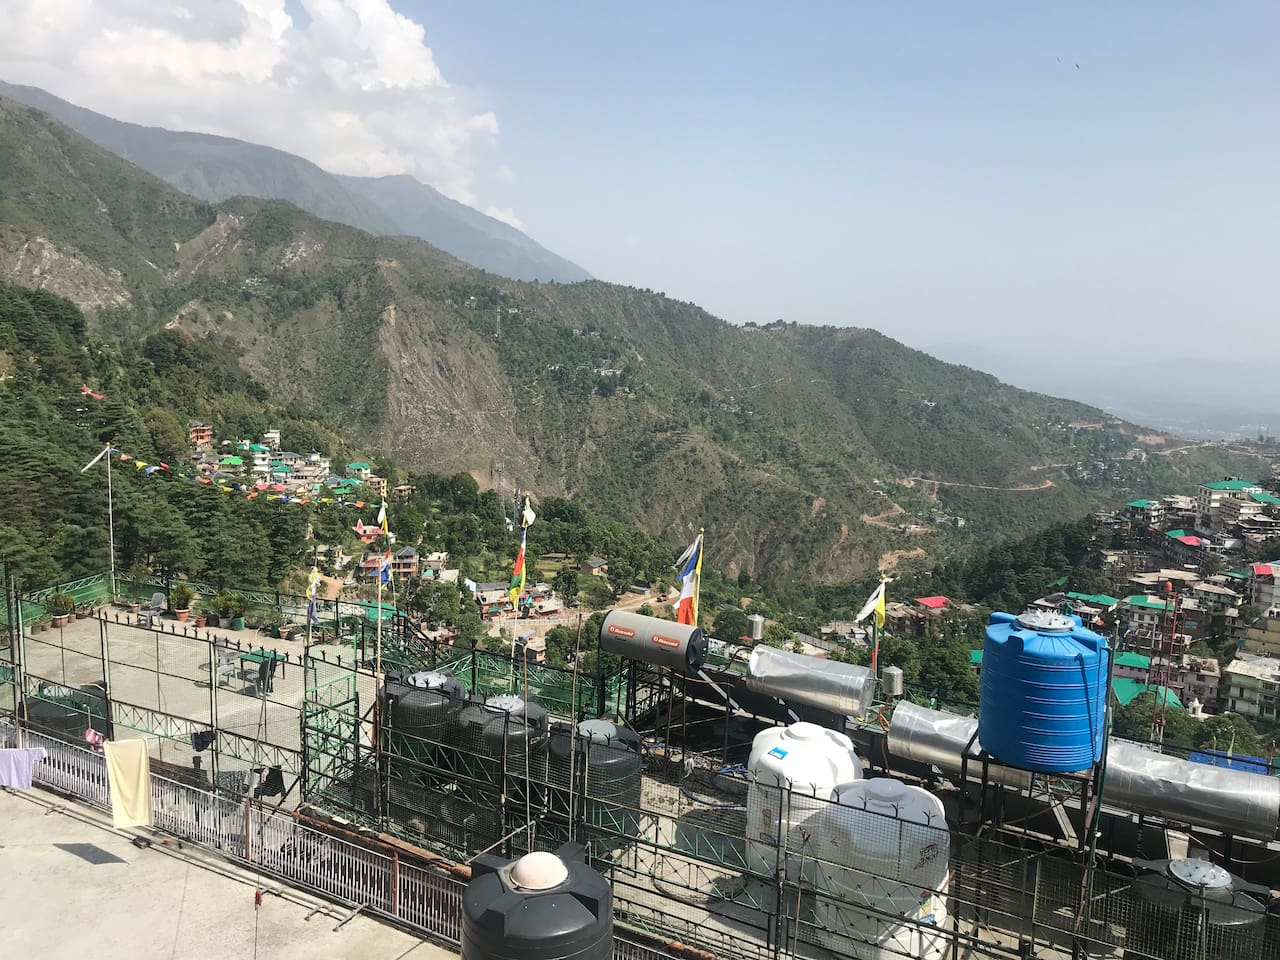 This is the best view of whole McLeod ganj from our guest house terrace. You can enjoy a part of the famous dhauladhar range and morning sunrise from the east.